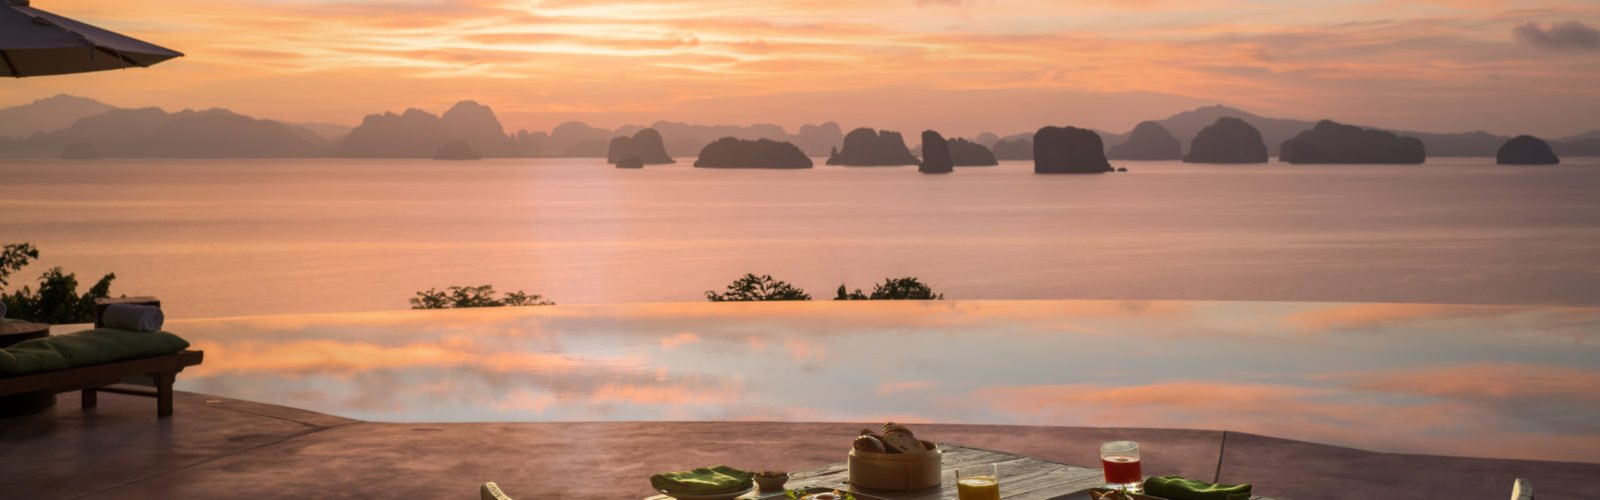 Sunrise breakfast, Six Senses Yao Noi, Thailand